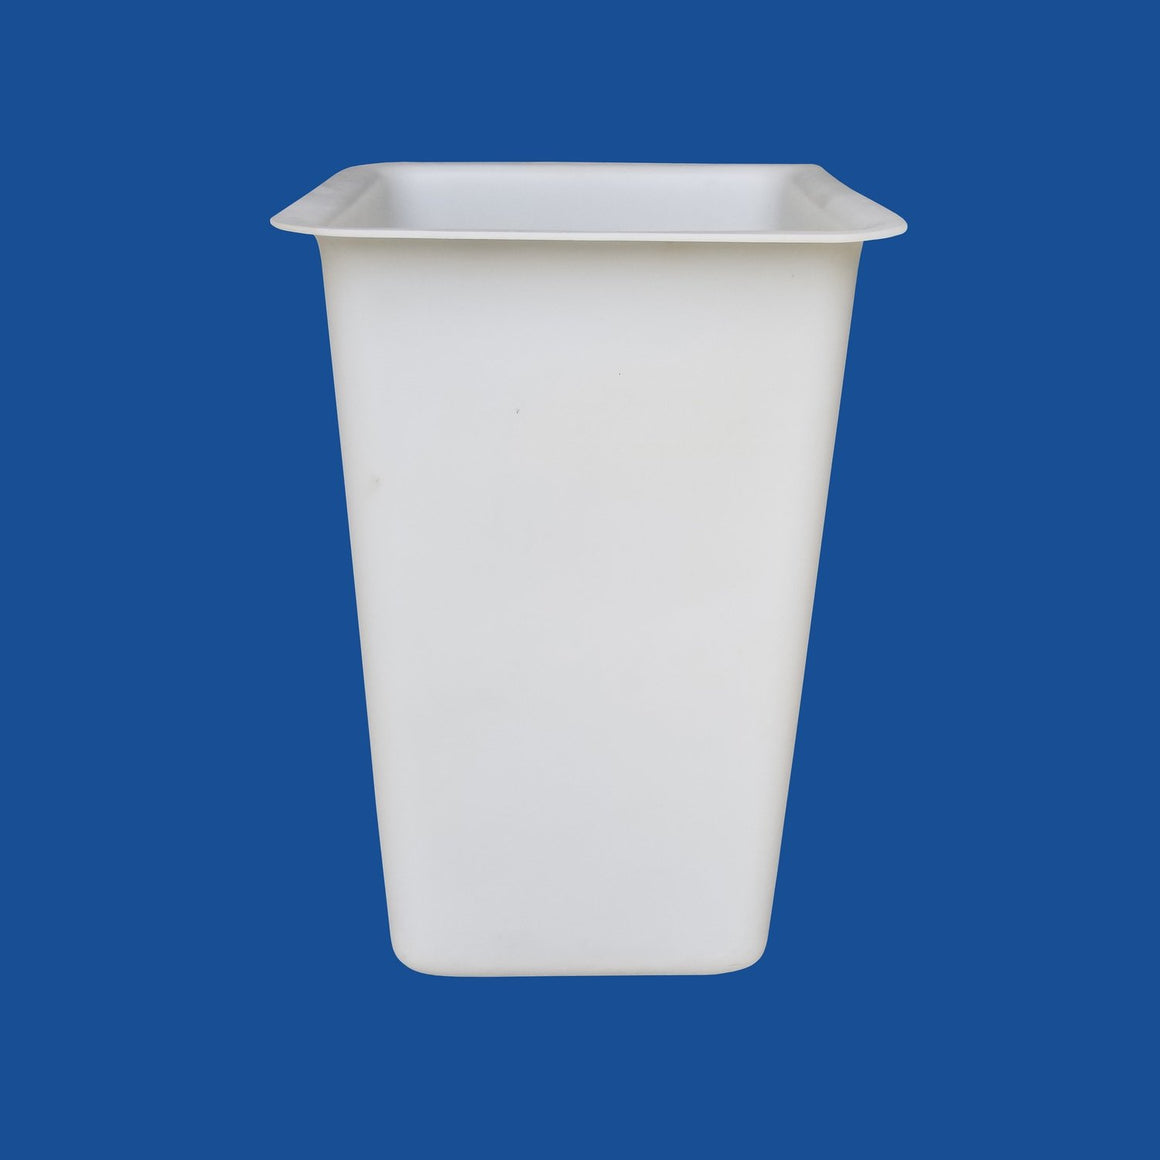 "Bucket Liner - 24"" x 24"" x 40"" - Single Man - (Nonskid) - Bucket Truck Parts"